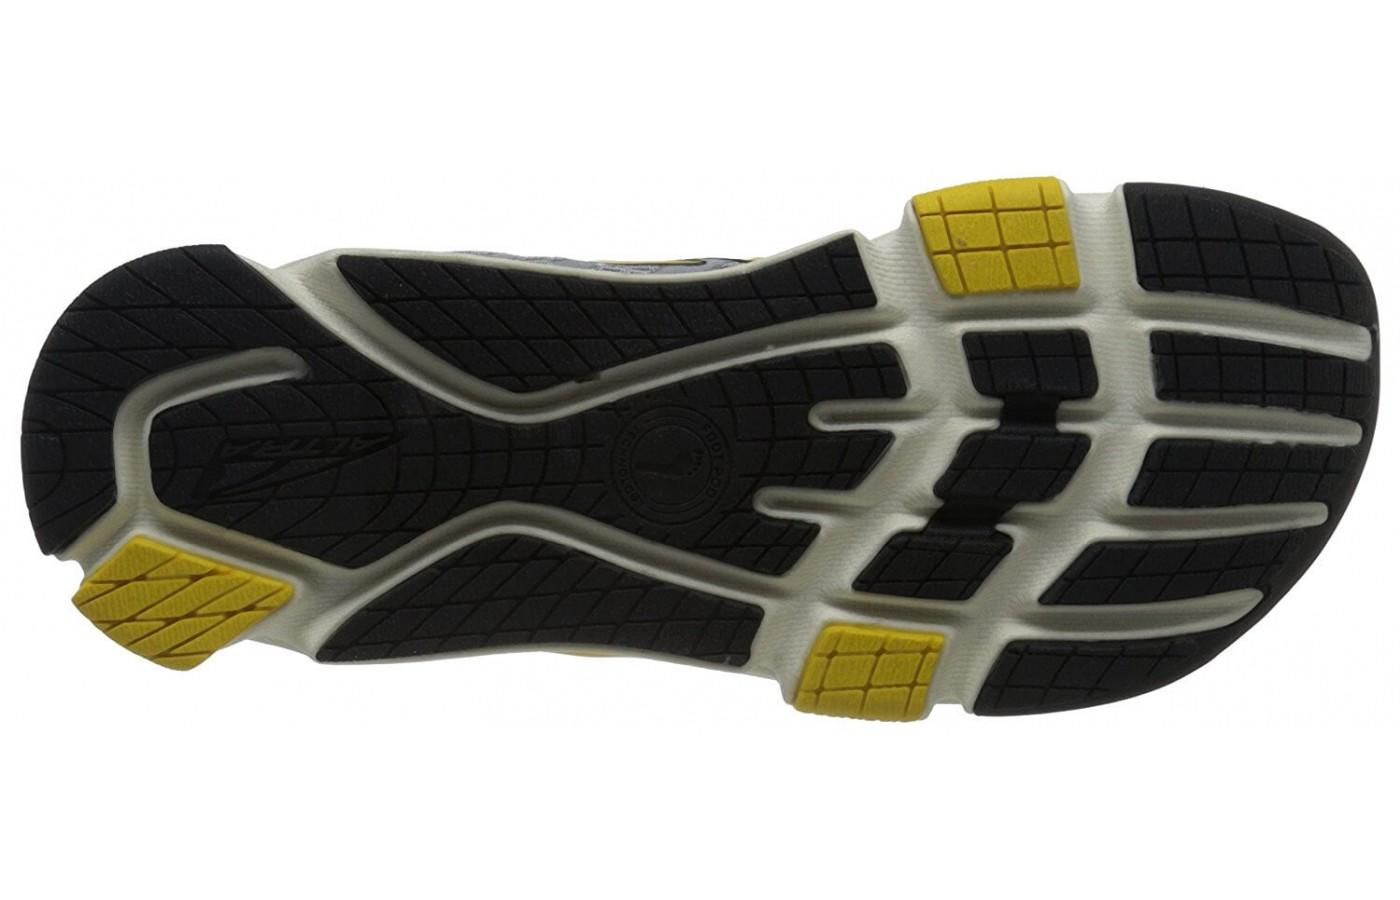 Altra Provision 2.5 has a thick and durable outsole